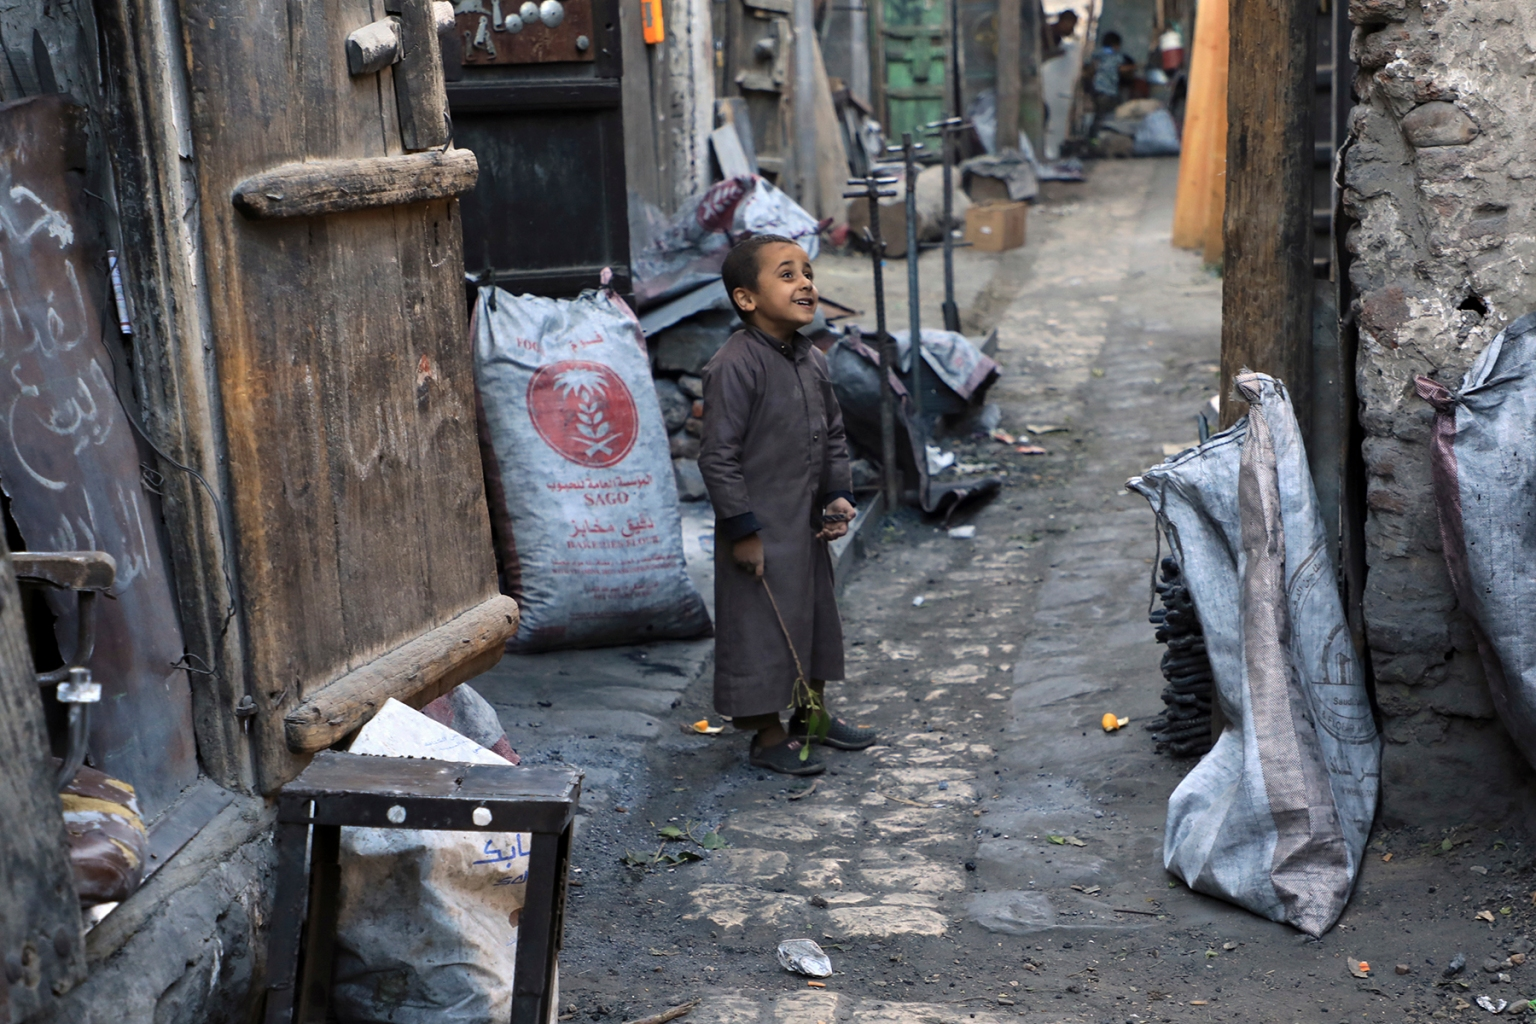 A Yemeni child plays in Sanaa's old city on Nov. 13. MOHAMMED HUWAIS/AFP/Getty Images